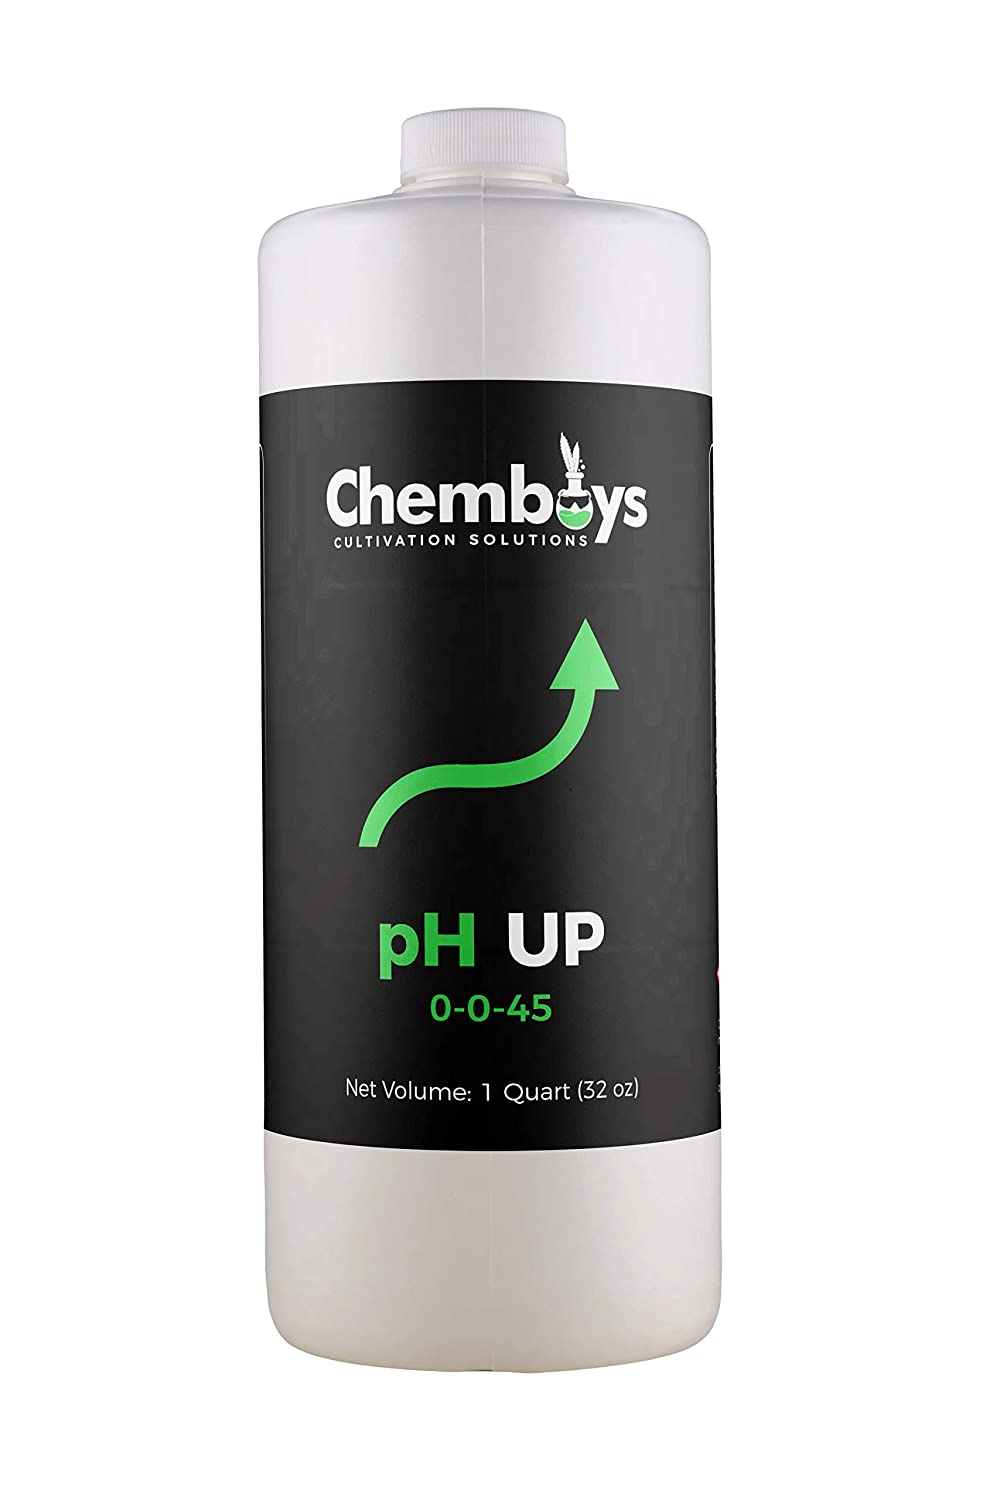 Chemboys pH Up Super 1 Strength Bombing free shipping Quart Max 50% OFF